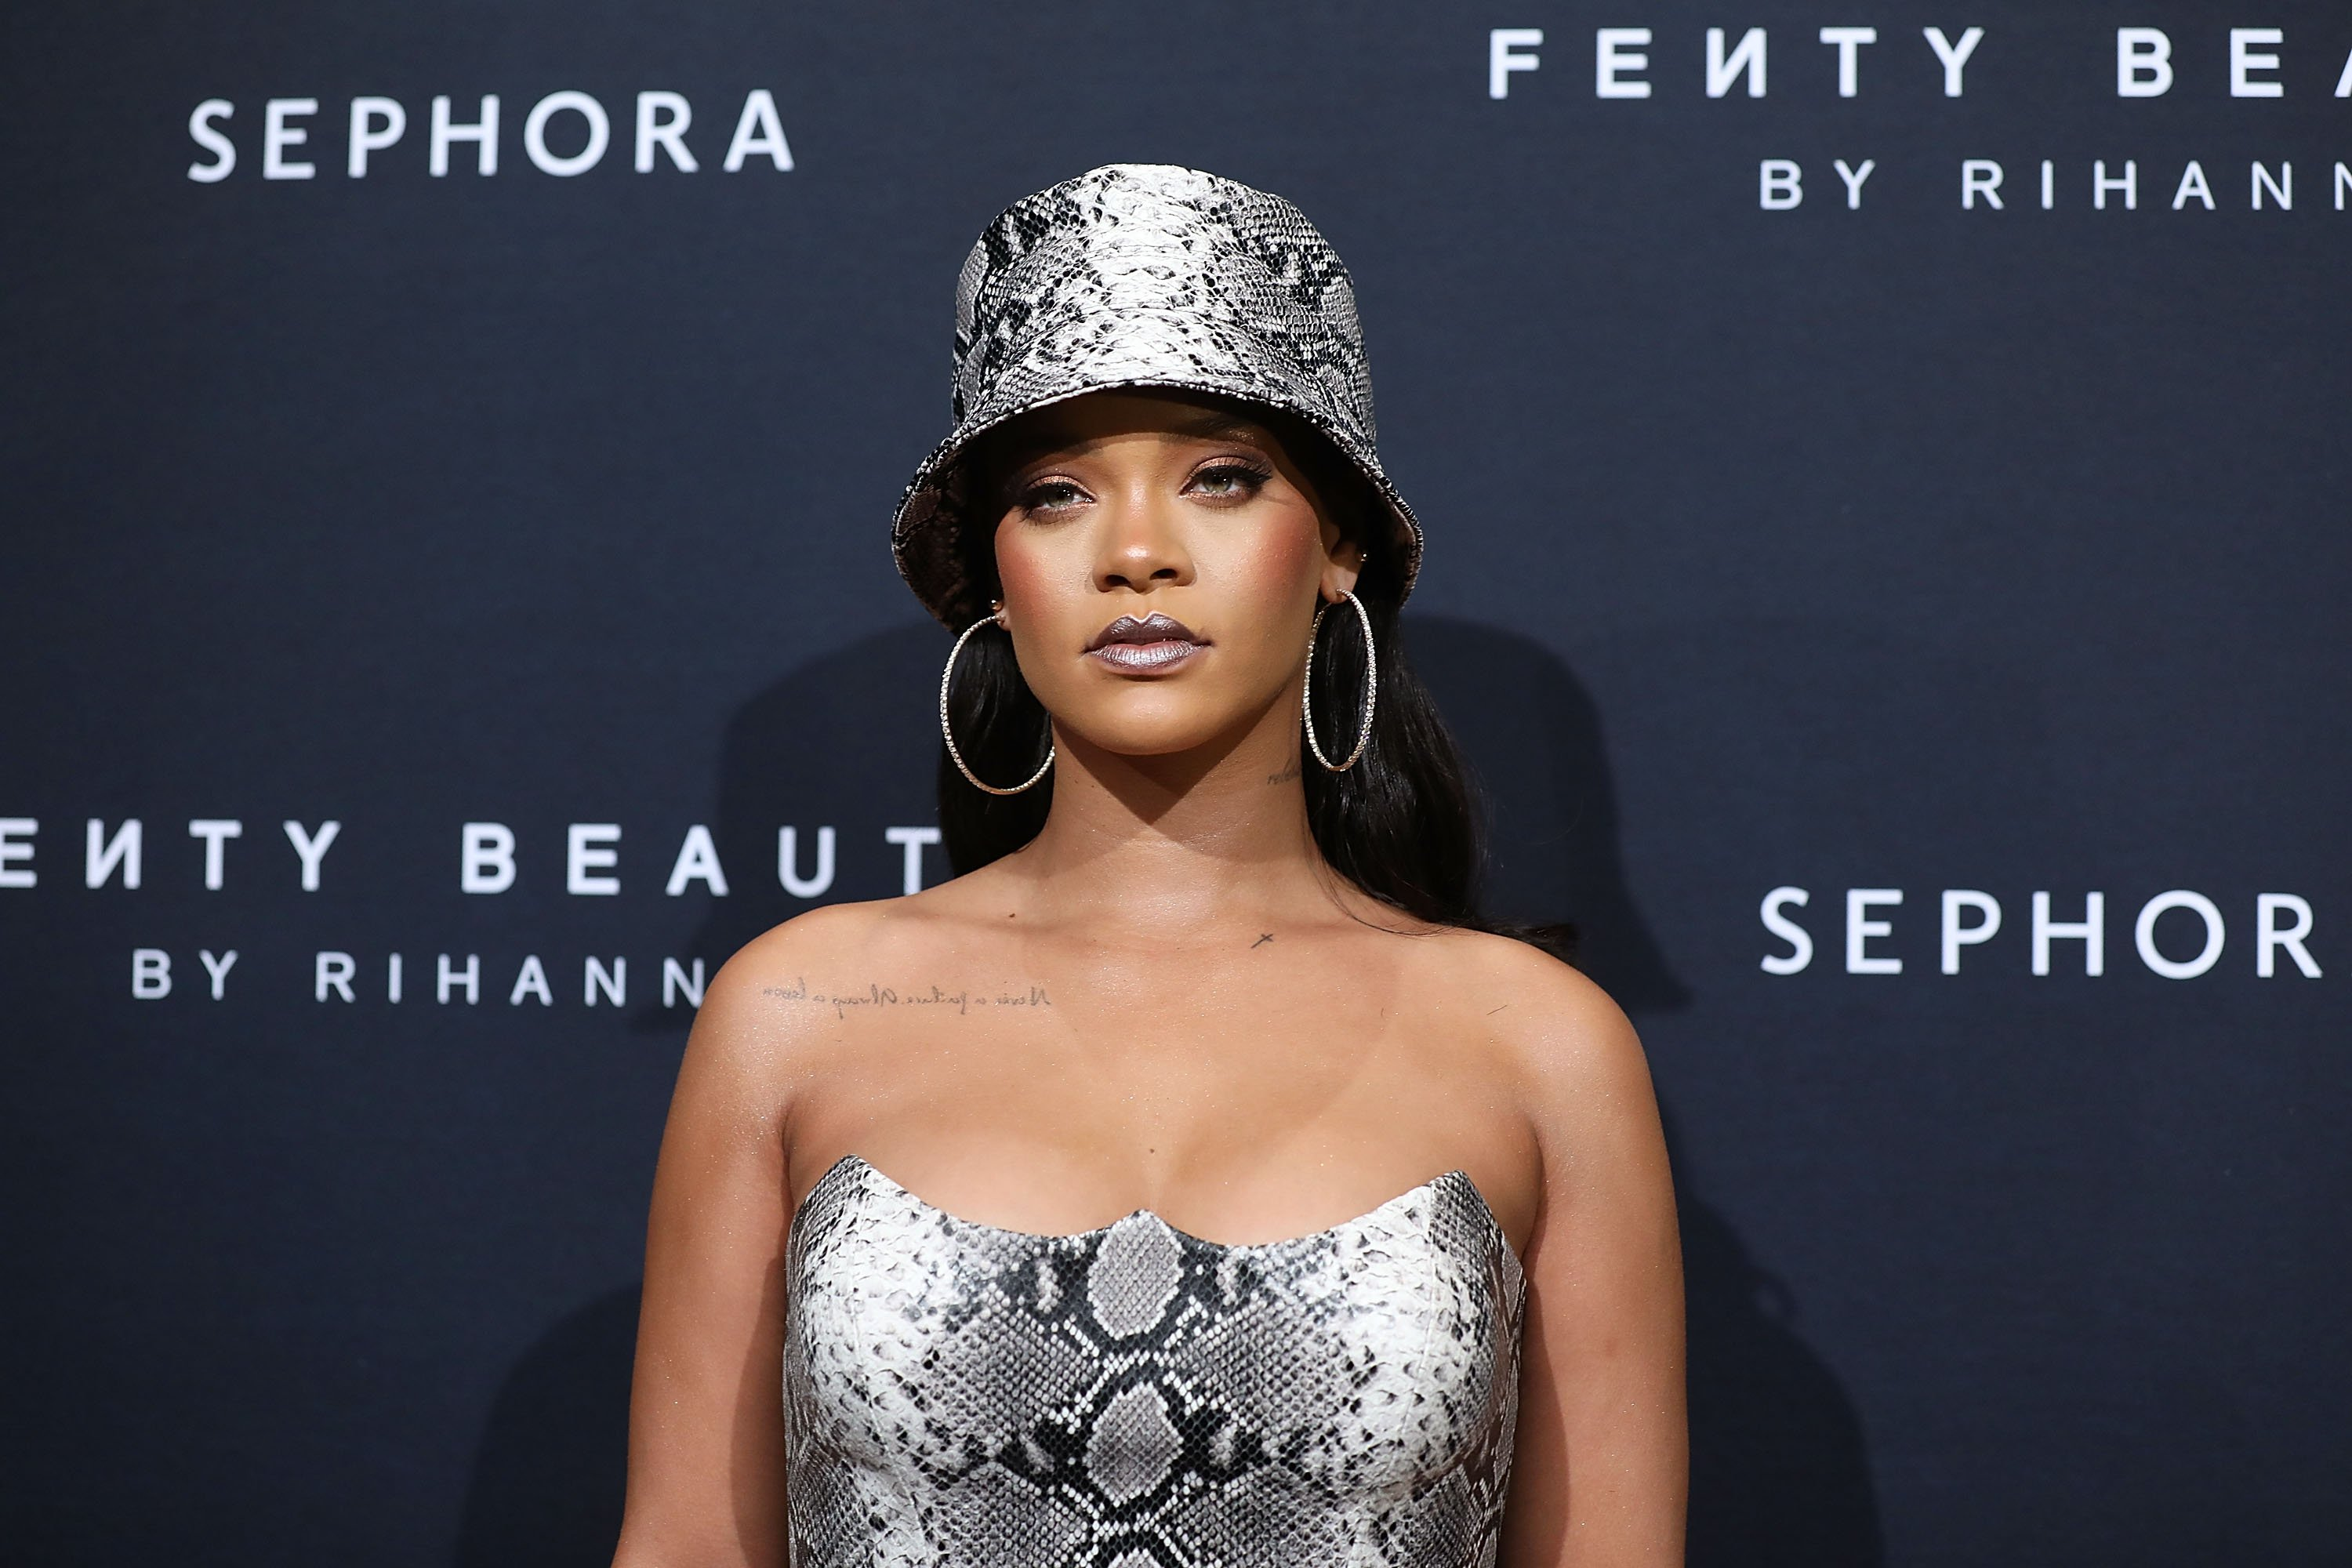 Rihanna at a Fenty promotional event in Australia   Photo: Getty Images